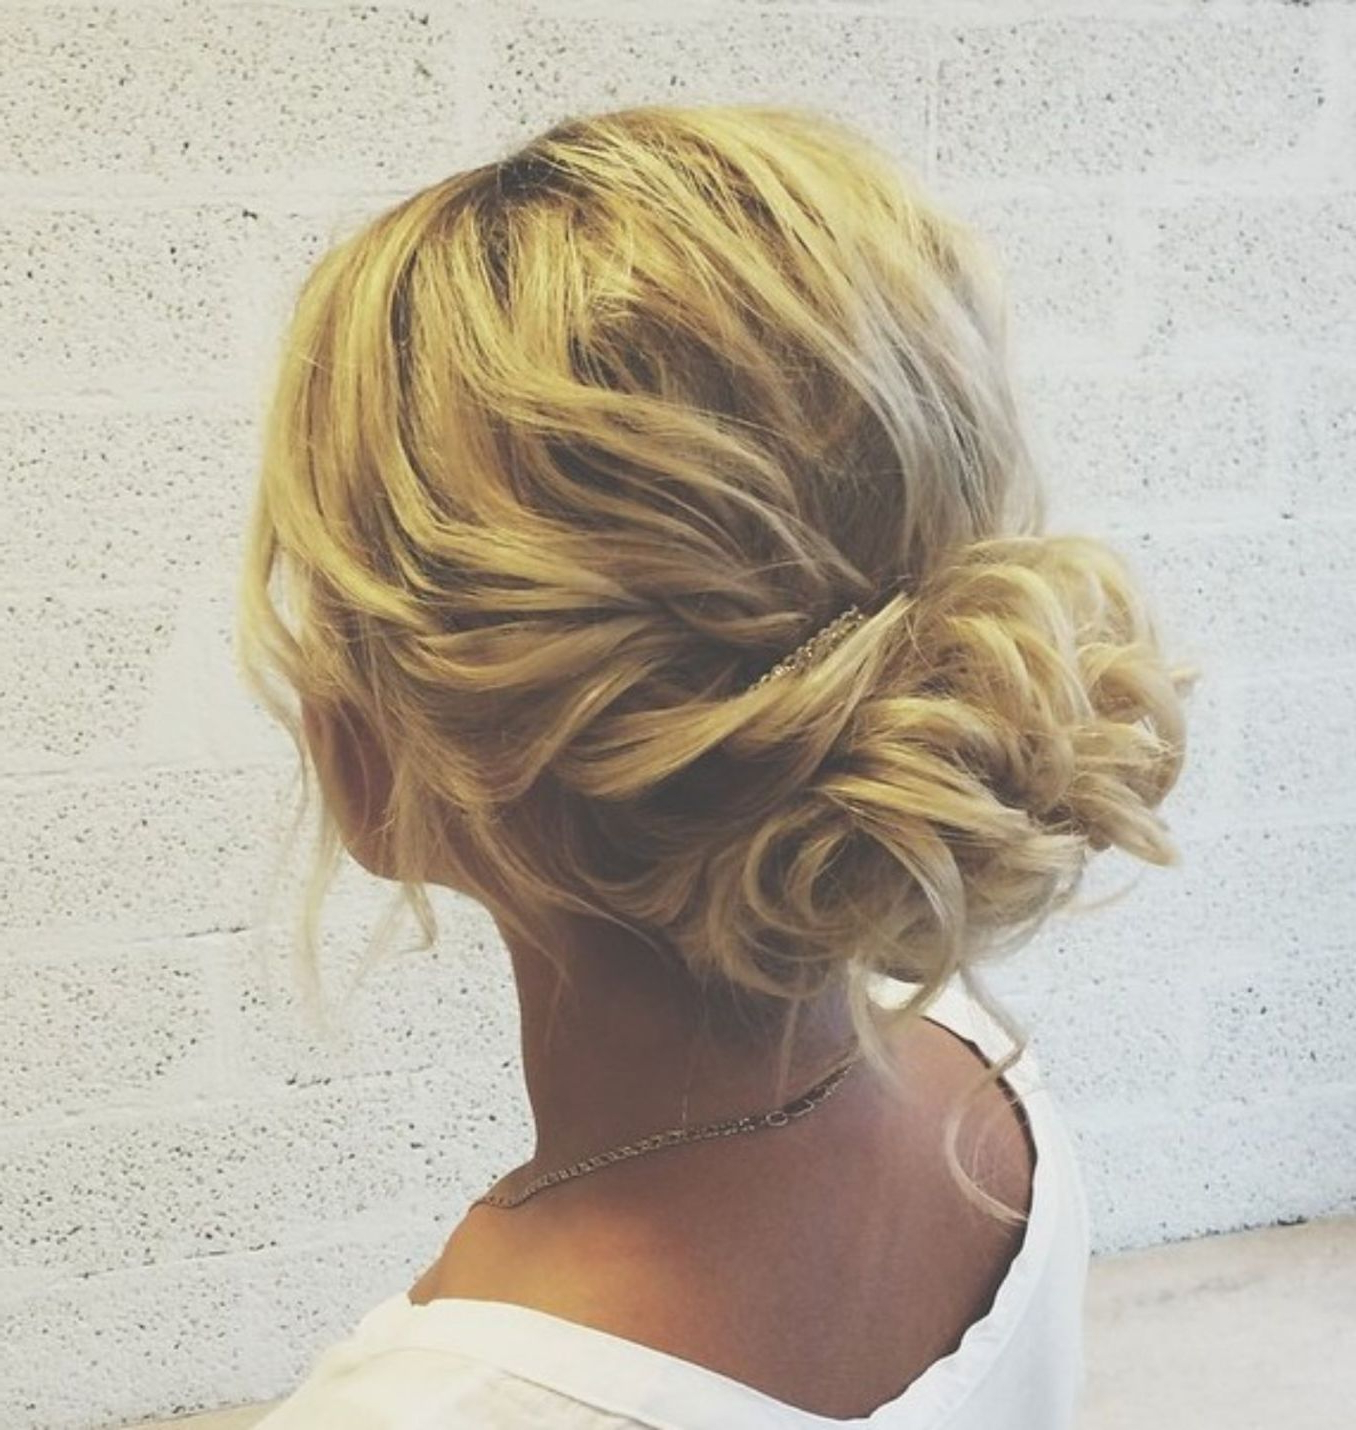 Outfit Intended For 2017 Curly Messy Updo Wedding Hairstyles For Fine Hair (Gallery 10 of 20)